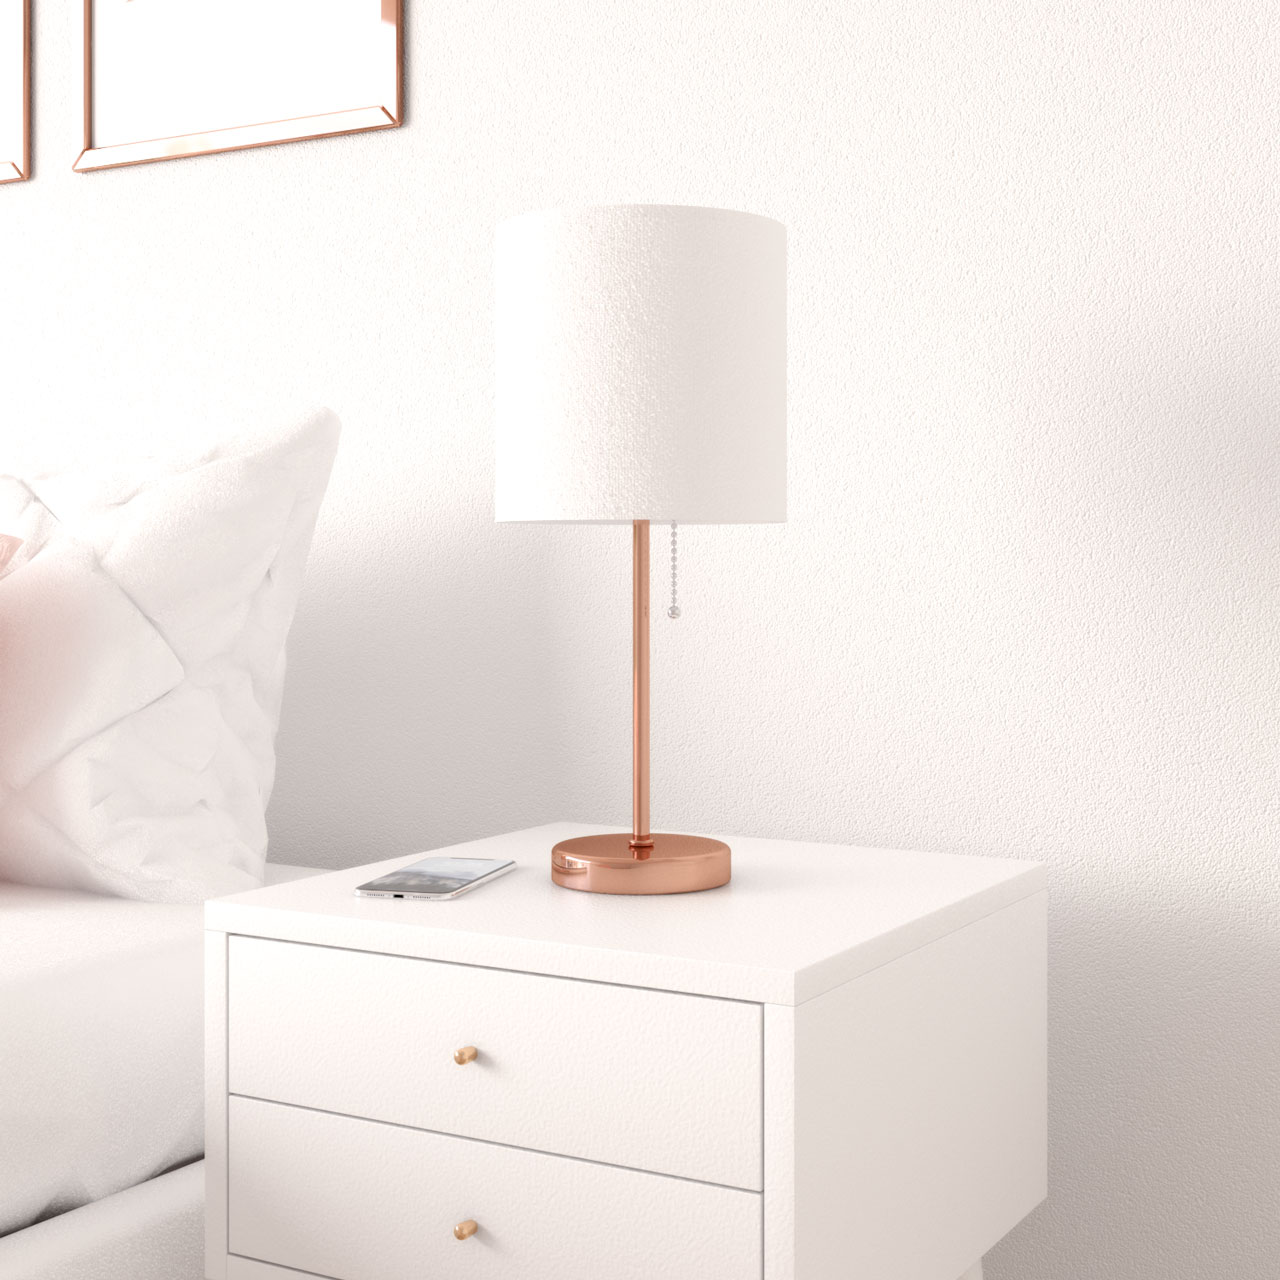 Rose gold decor ideas using rose gold table lamp